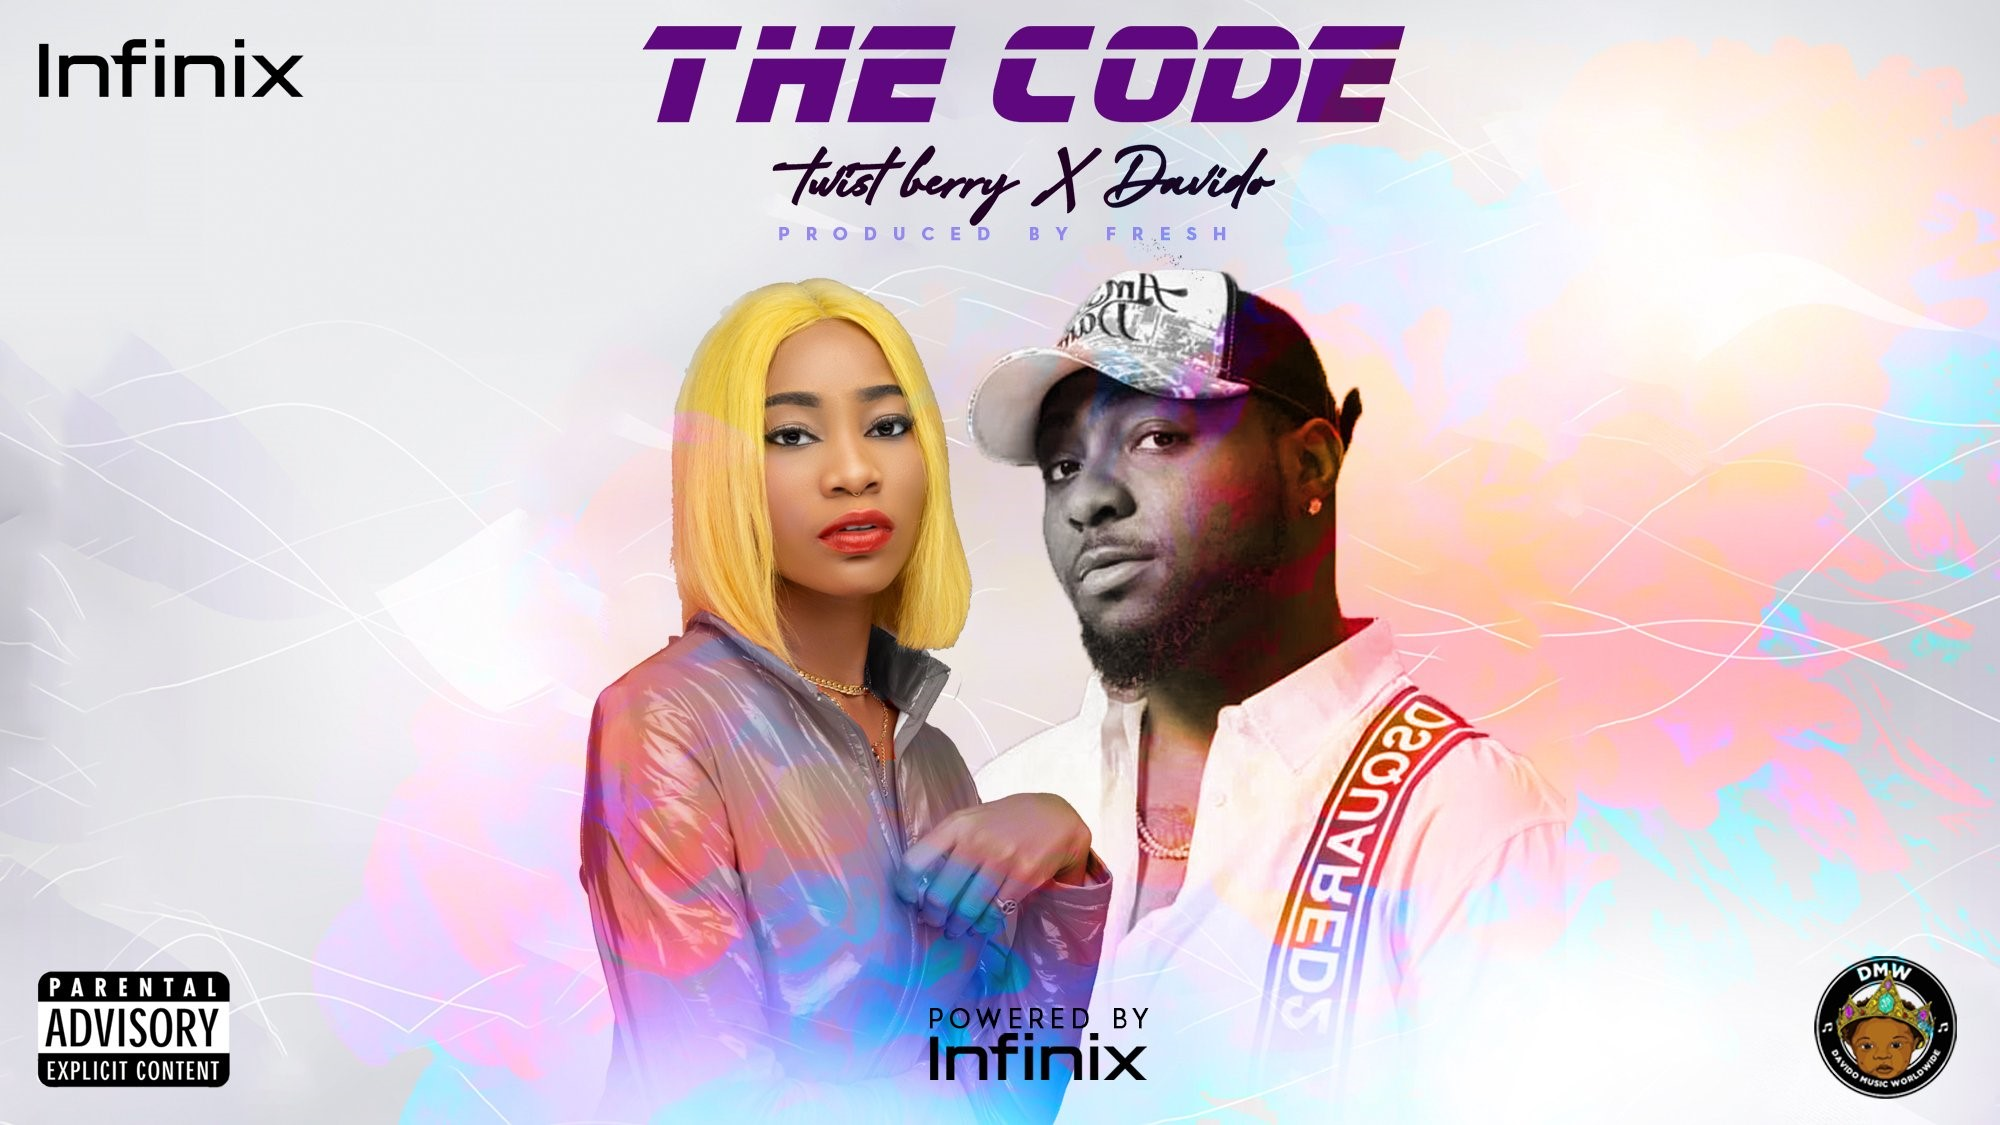 Infinix Empowers another Star: Davido Features on Song with Hot 10 Star Winner